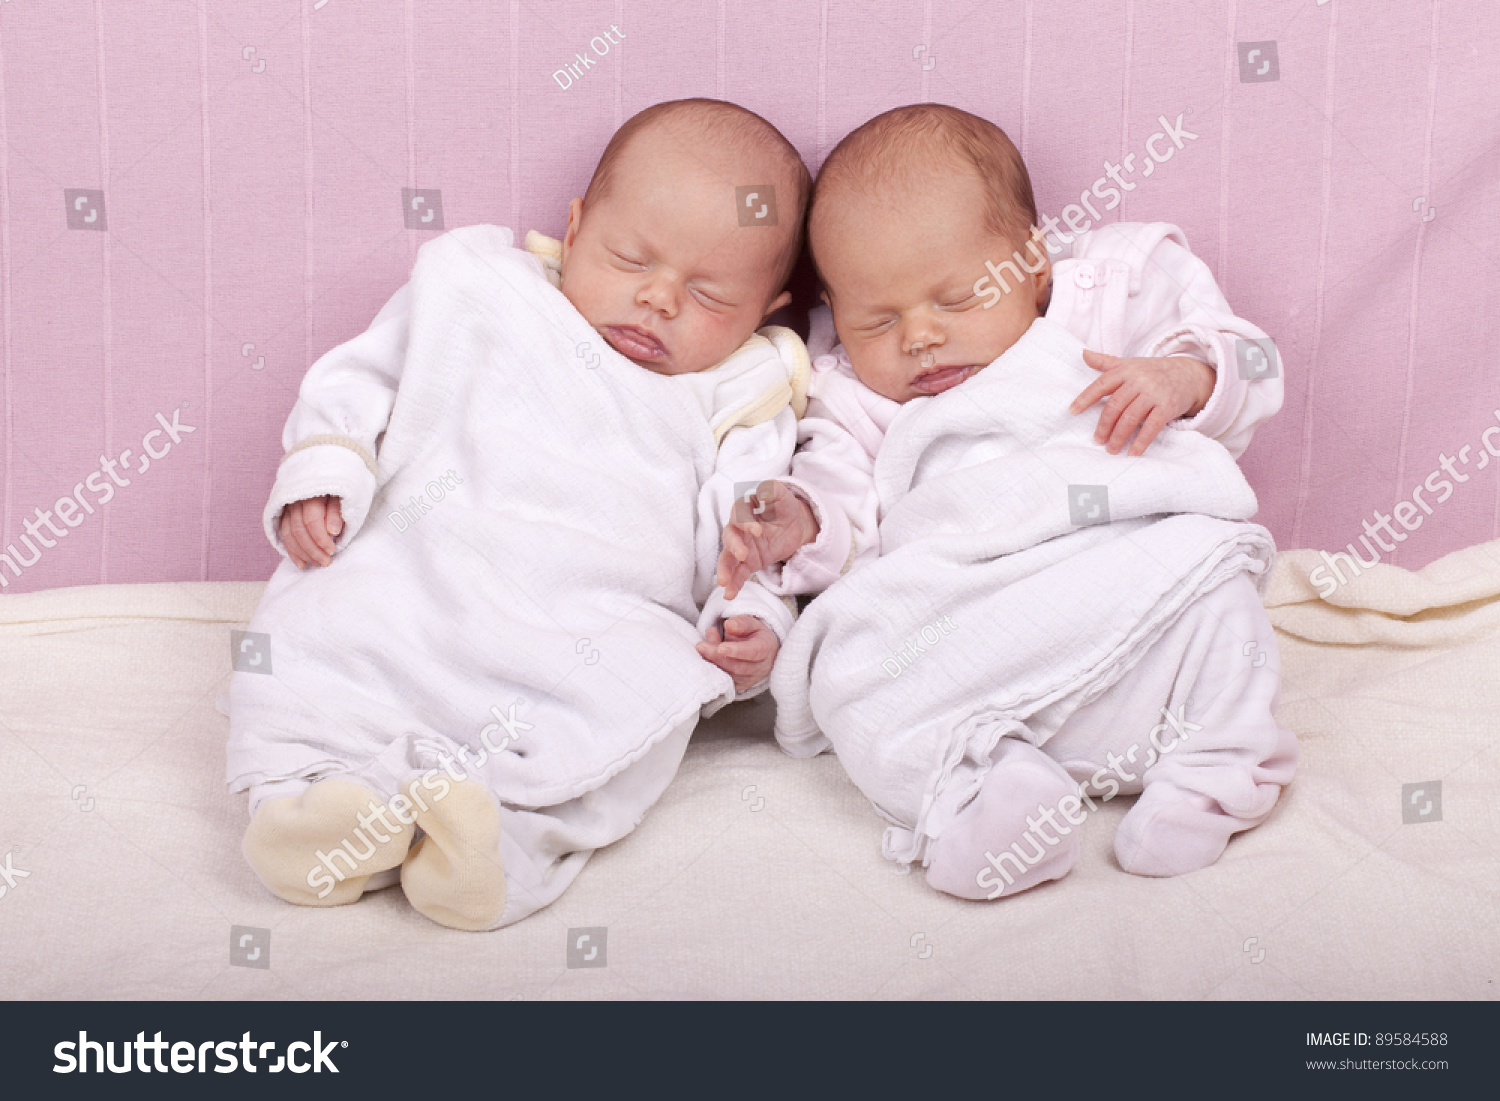 identical twin newborn babies - photo #7